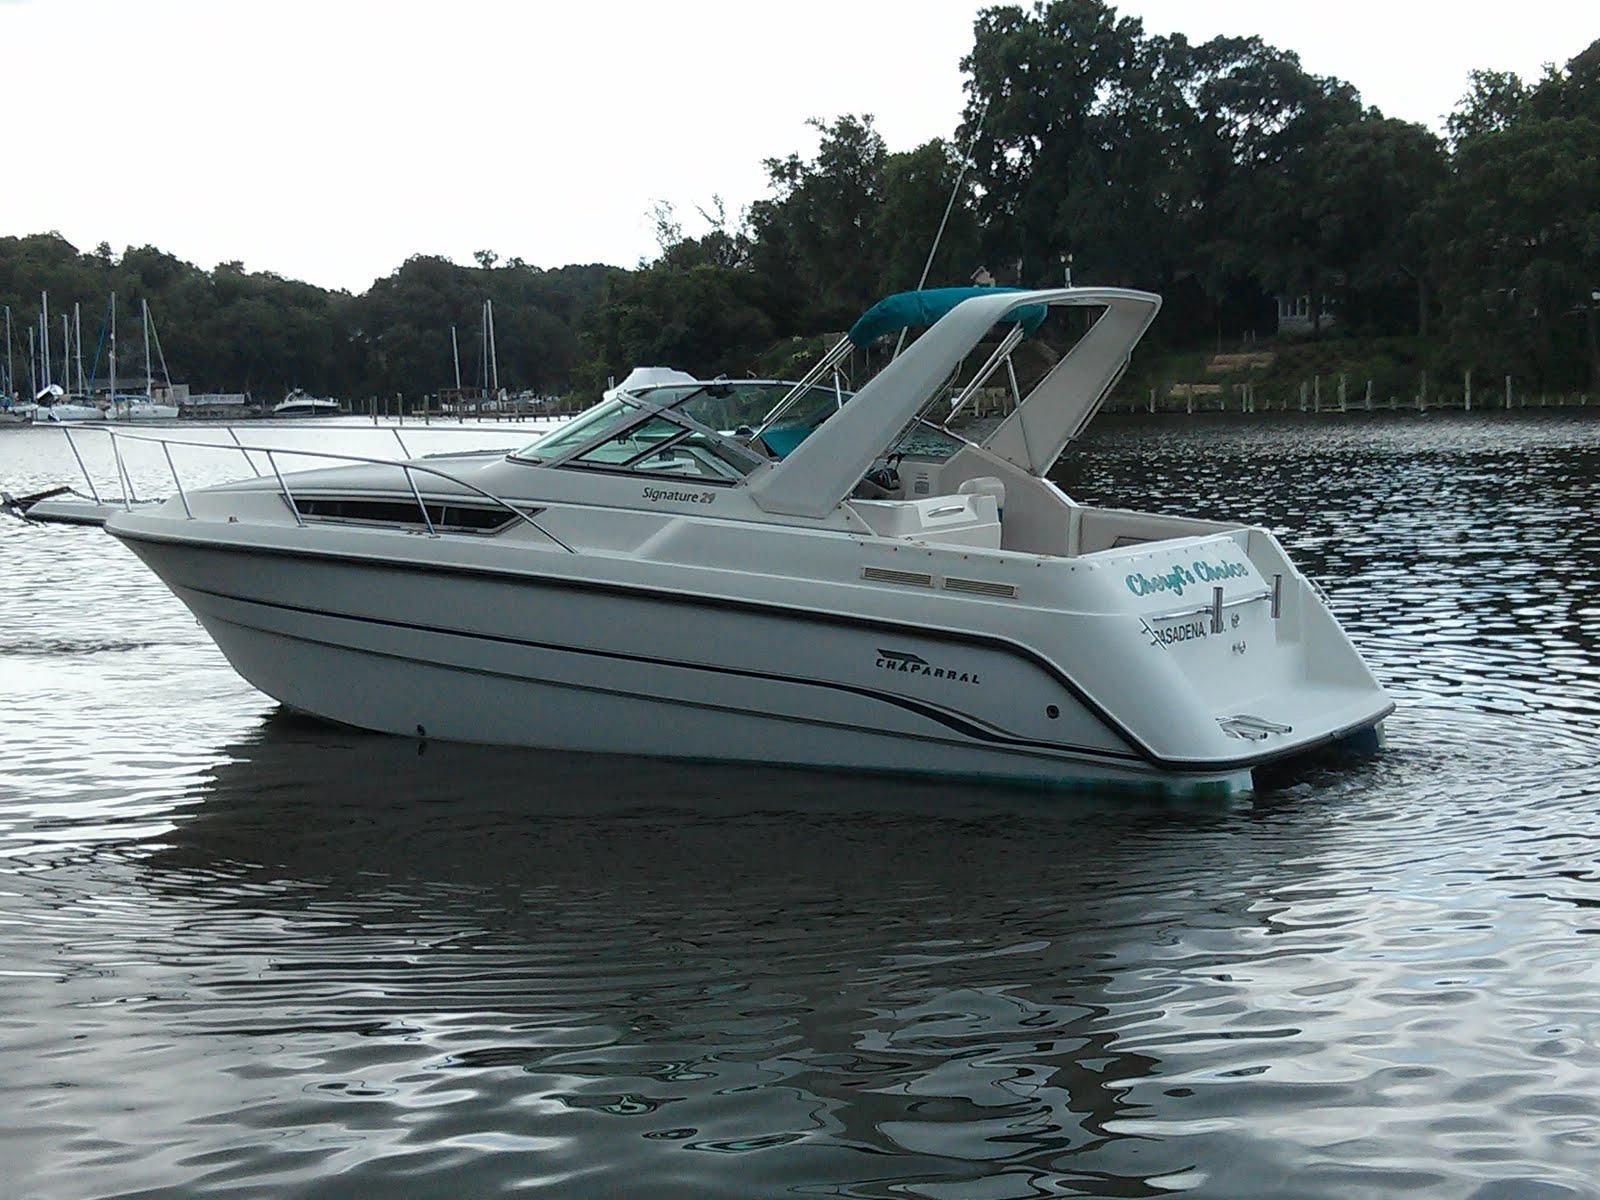 1995 Chaparral 290 Signature   Shady side, Used boats ...